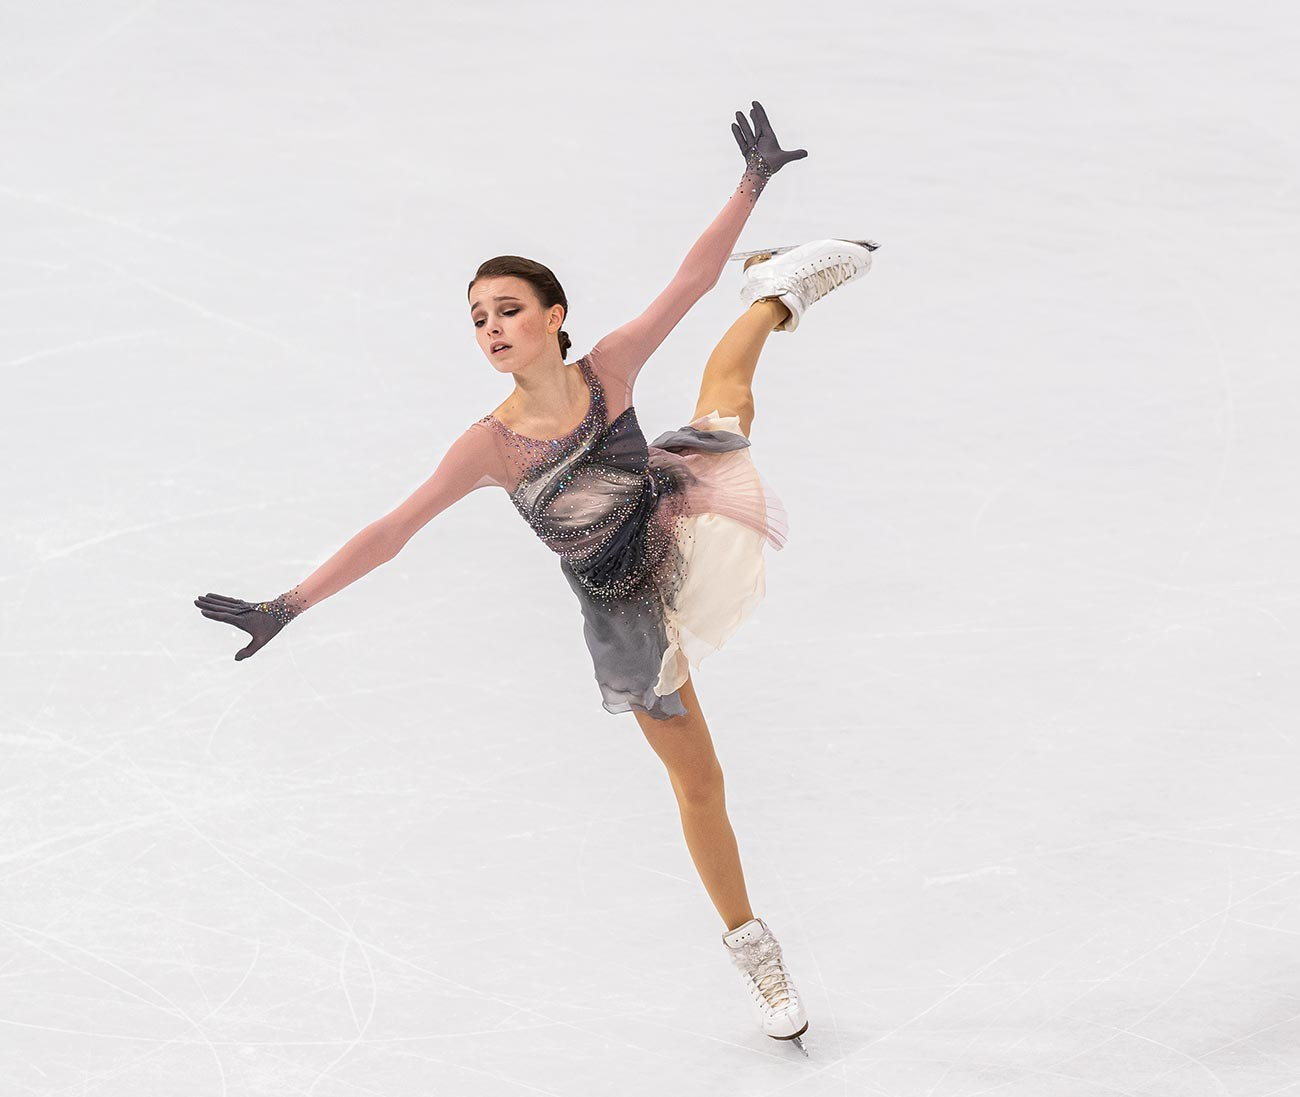 Anna Shcherbakova of Russia competes in Women's Free Skating during the ISU World Figure Skating Championships on March 26, 2021 in Stockholm